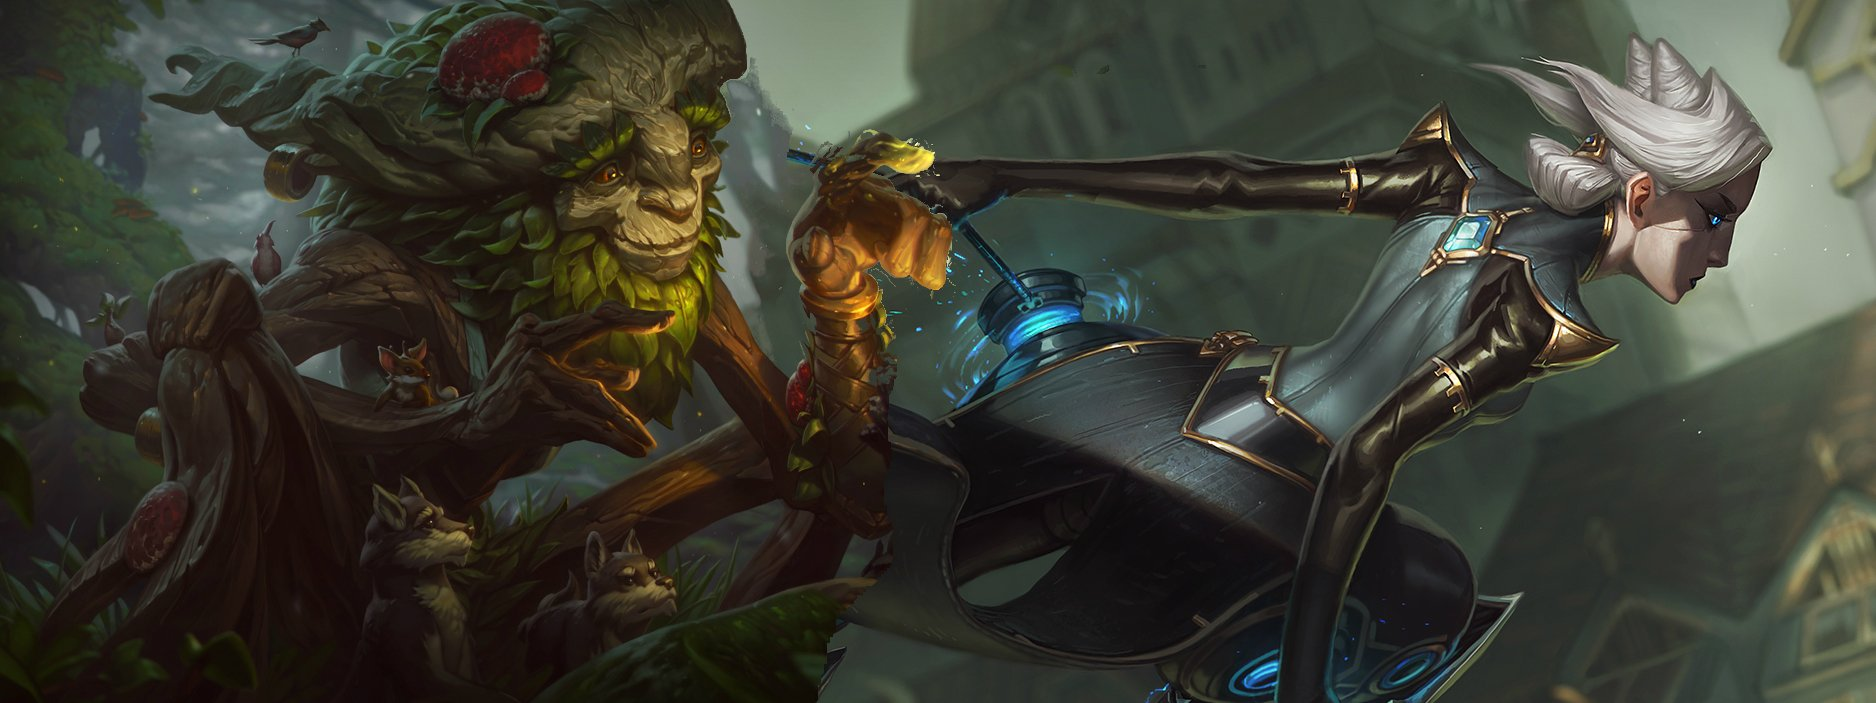 Catching up with Camille and Ivern, the two latest League of Legends Champions screenshot